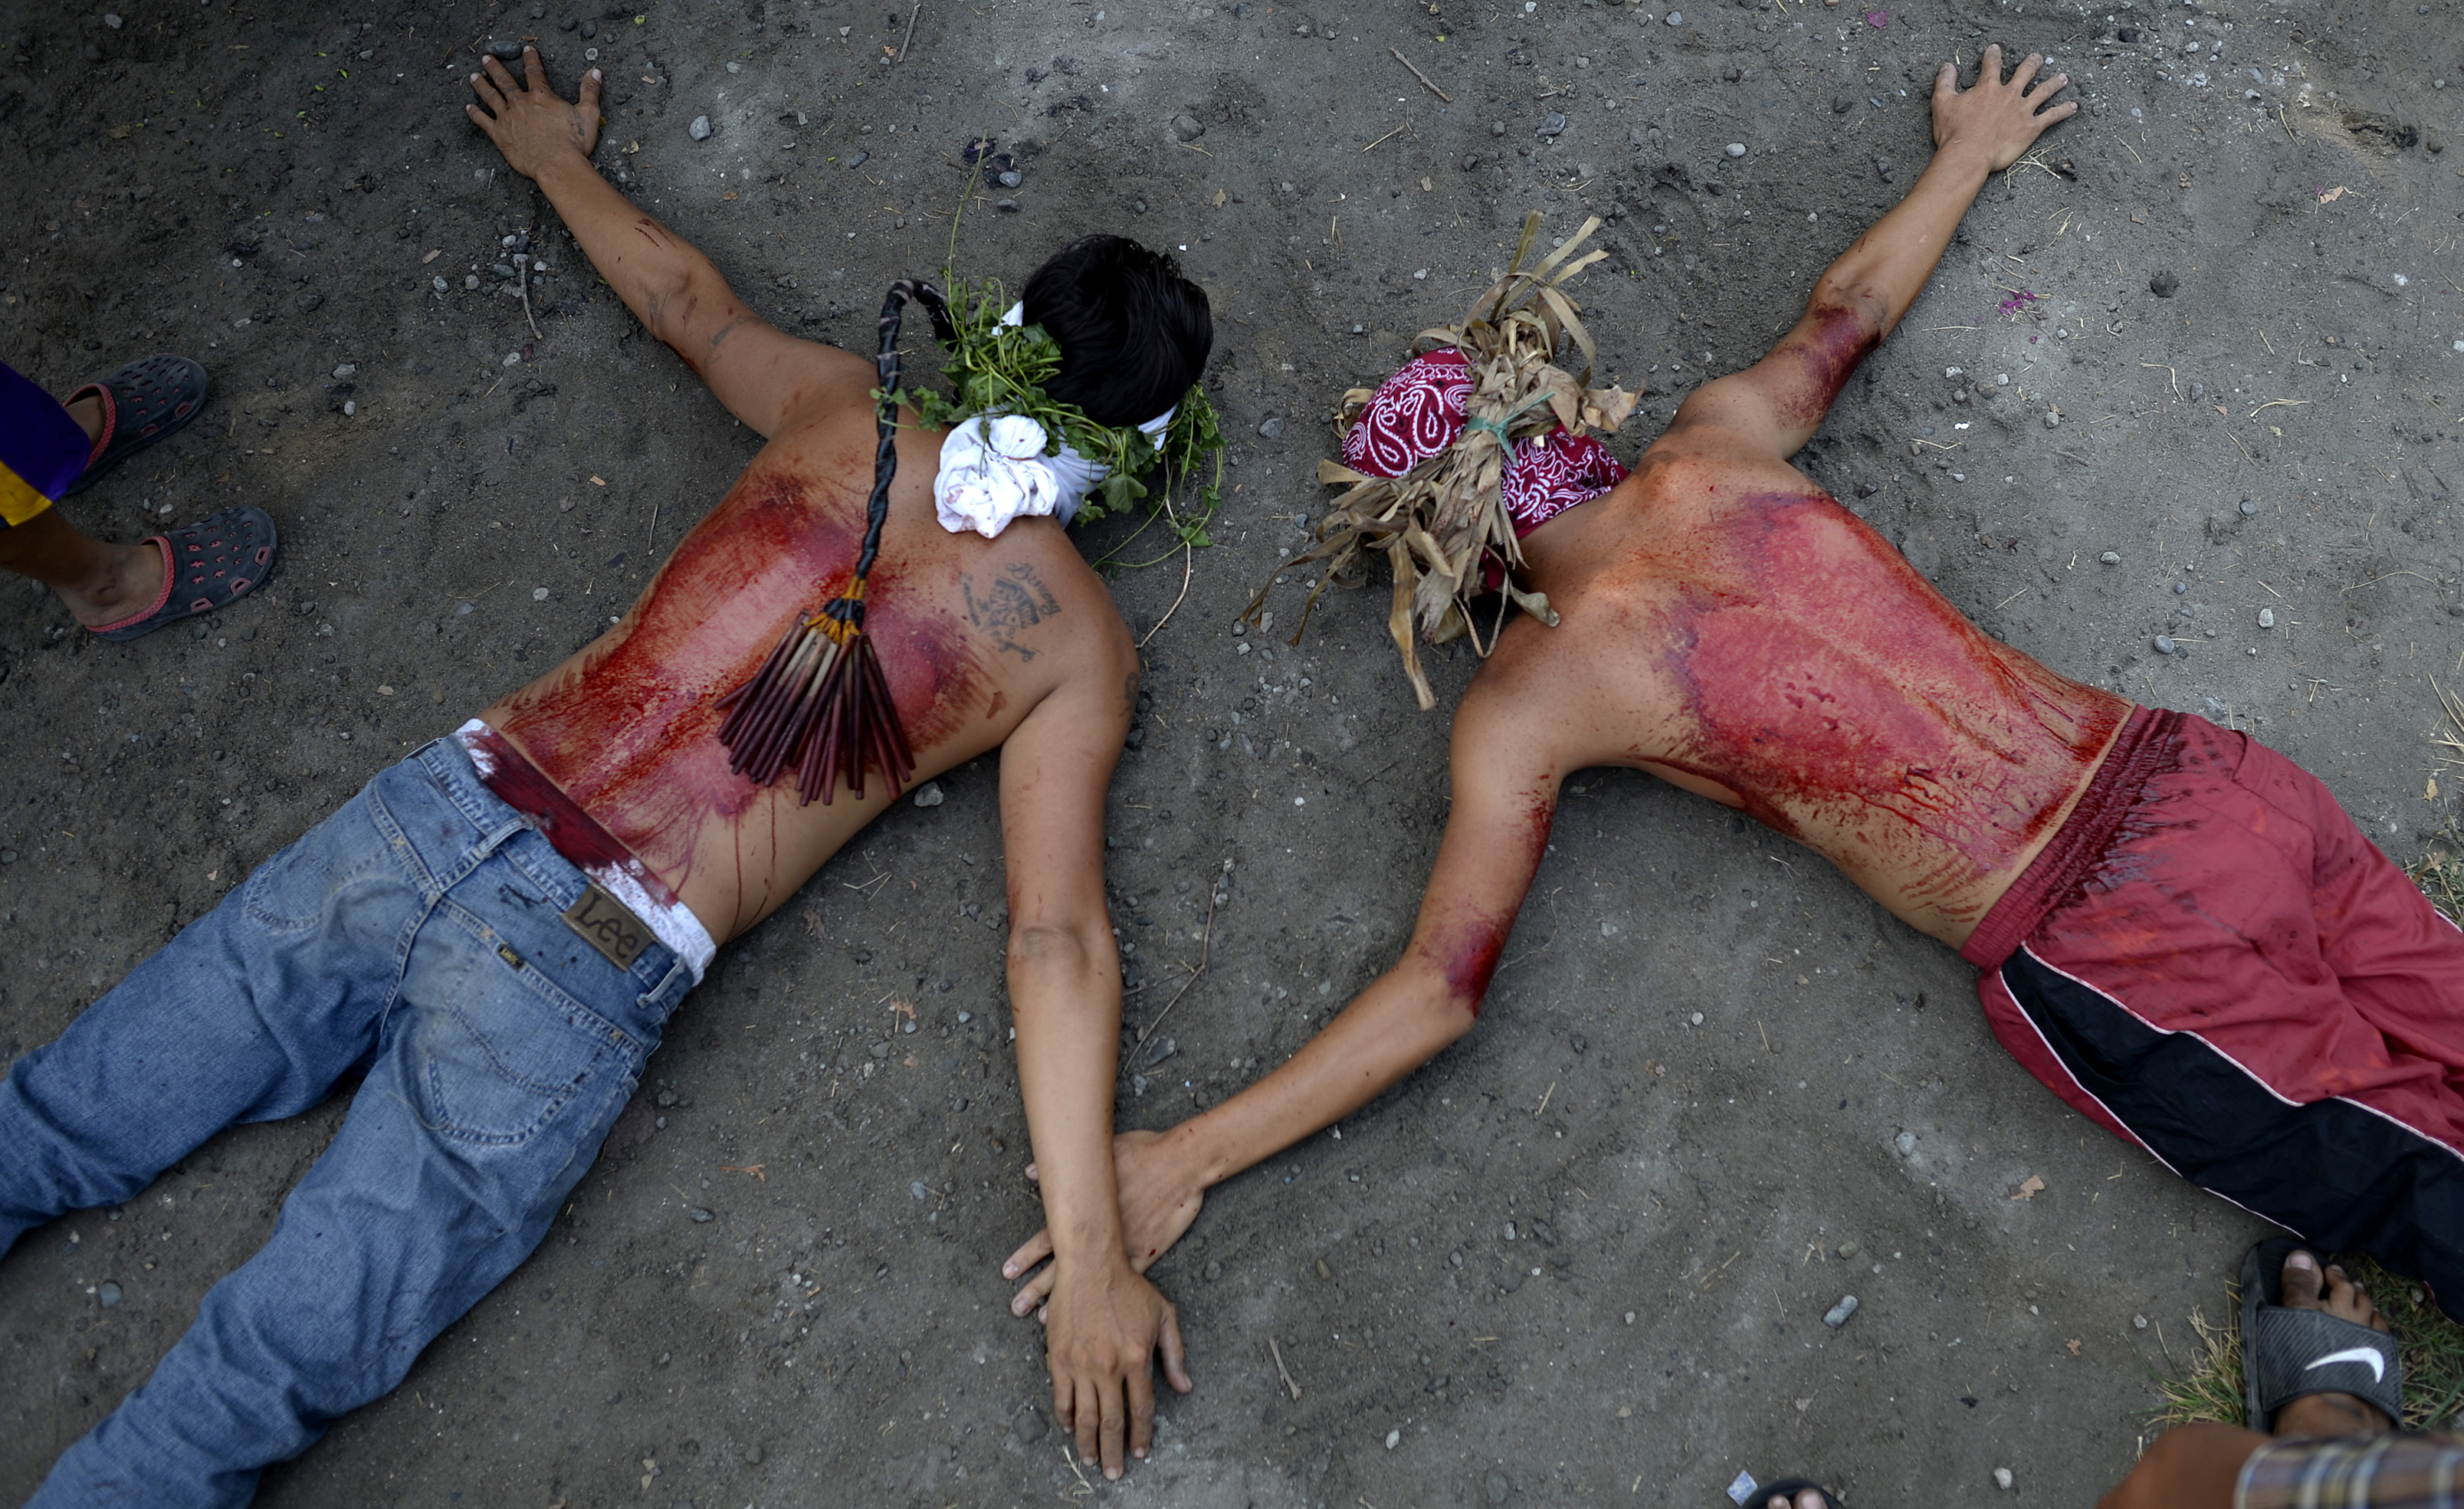 Participants lie on the ground after whipping their bloodied backs with bamboo as part of their penitence during a ceremony reenacting the crucifixion of Jesus Christ for Good Friday celebrations ahead of Easter in the village of San Juan, Pampanga, north of Manila on March 25, 2016. Christian devotees were nailed to crosses in the Philippines on March 25 as Asia's Catholic heartland marked Easter with an extreme display of faith. / AFP / NOEL CELIS